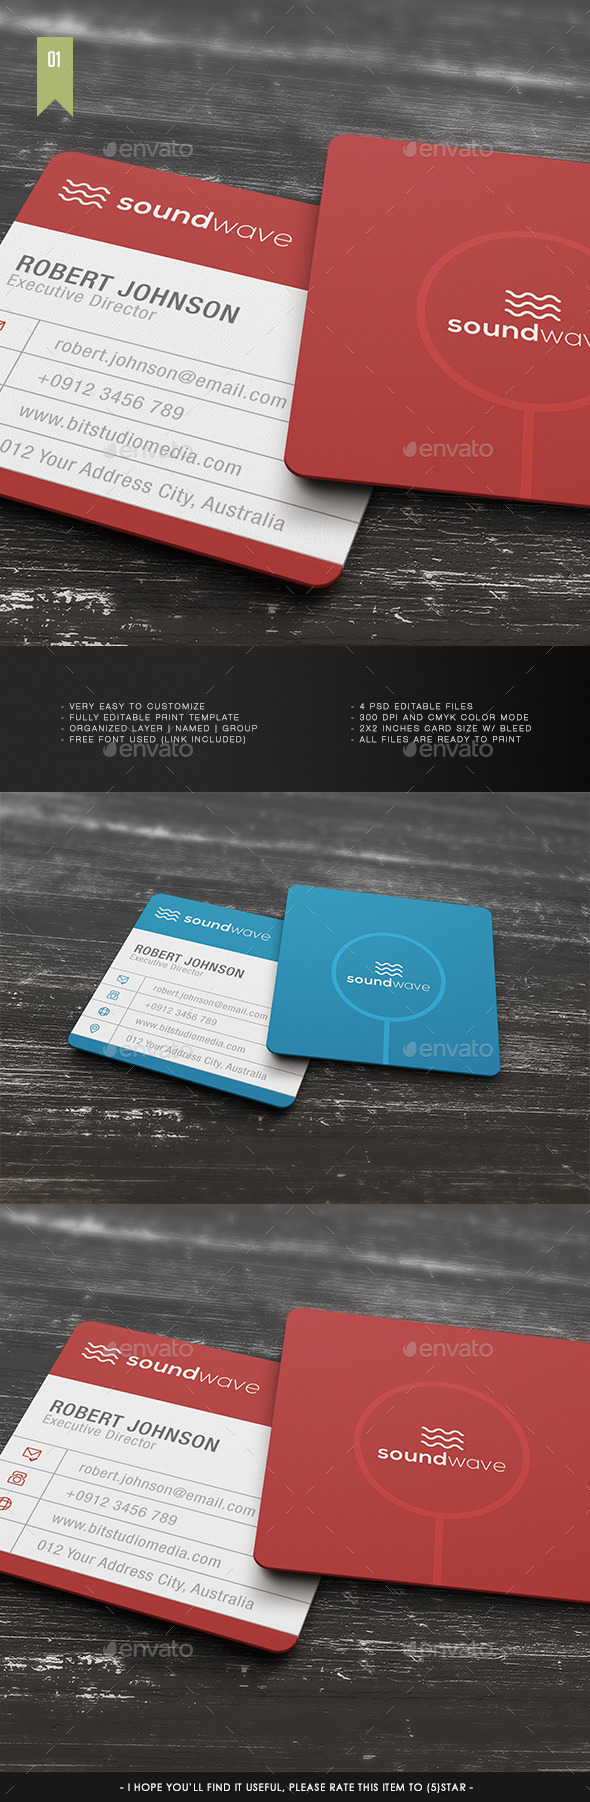 Square Business Card V.001